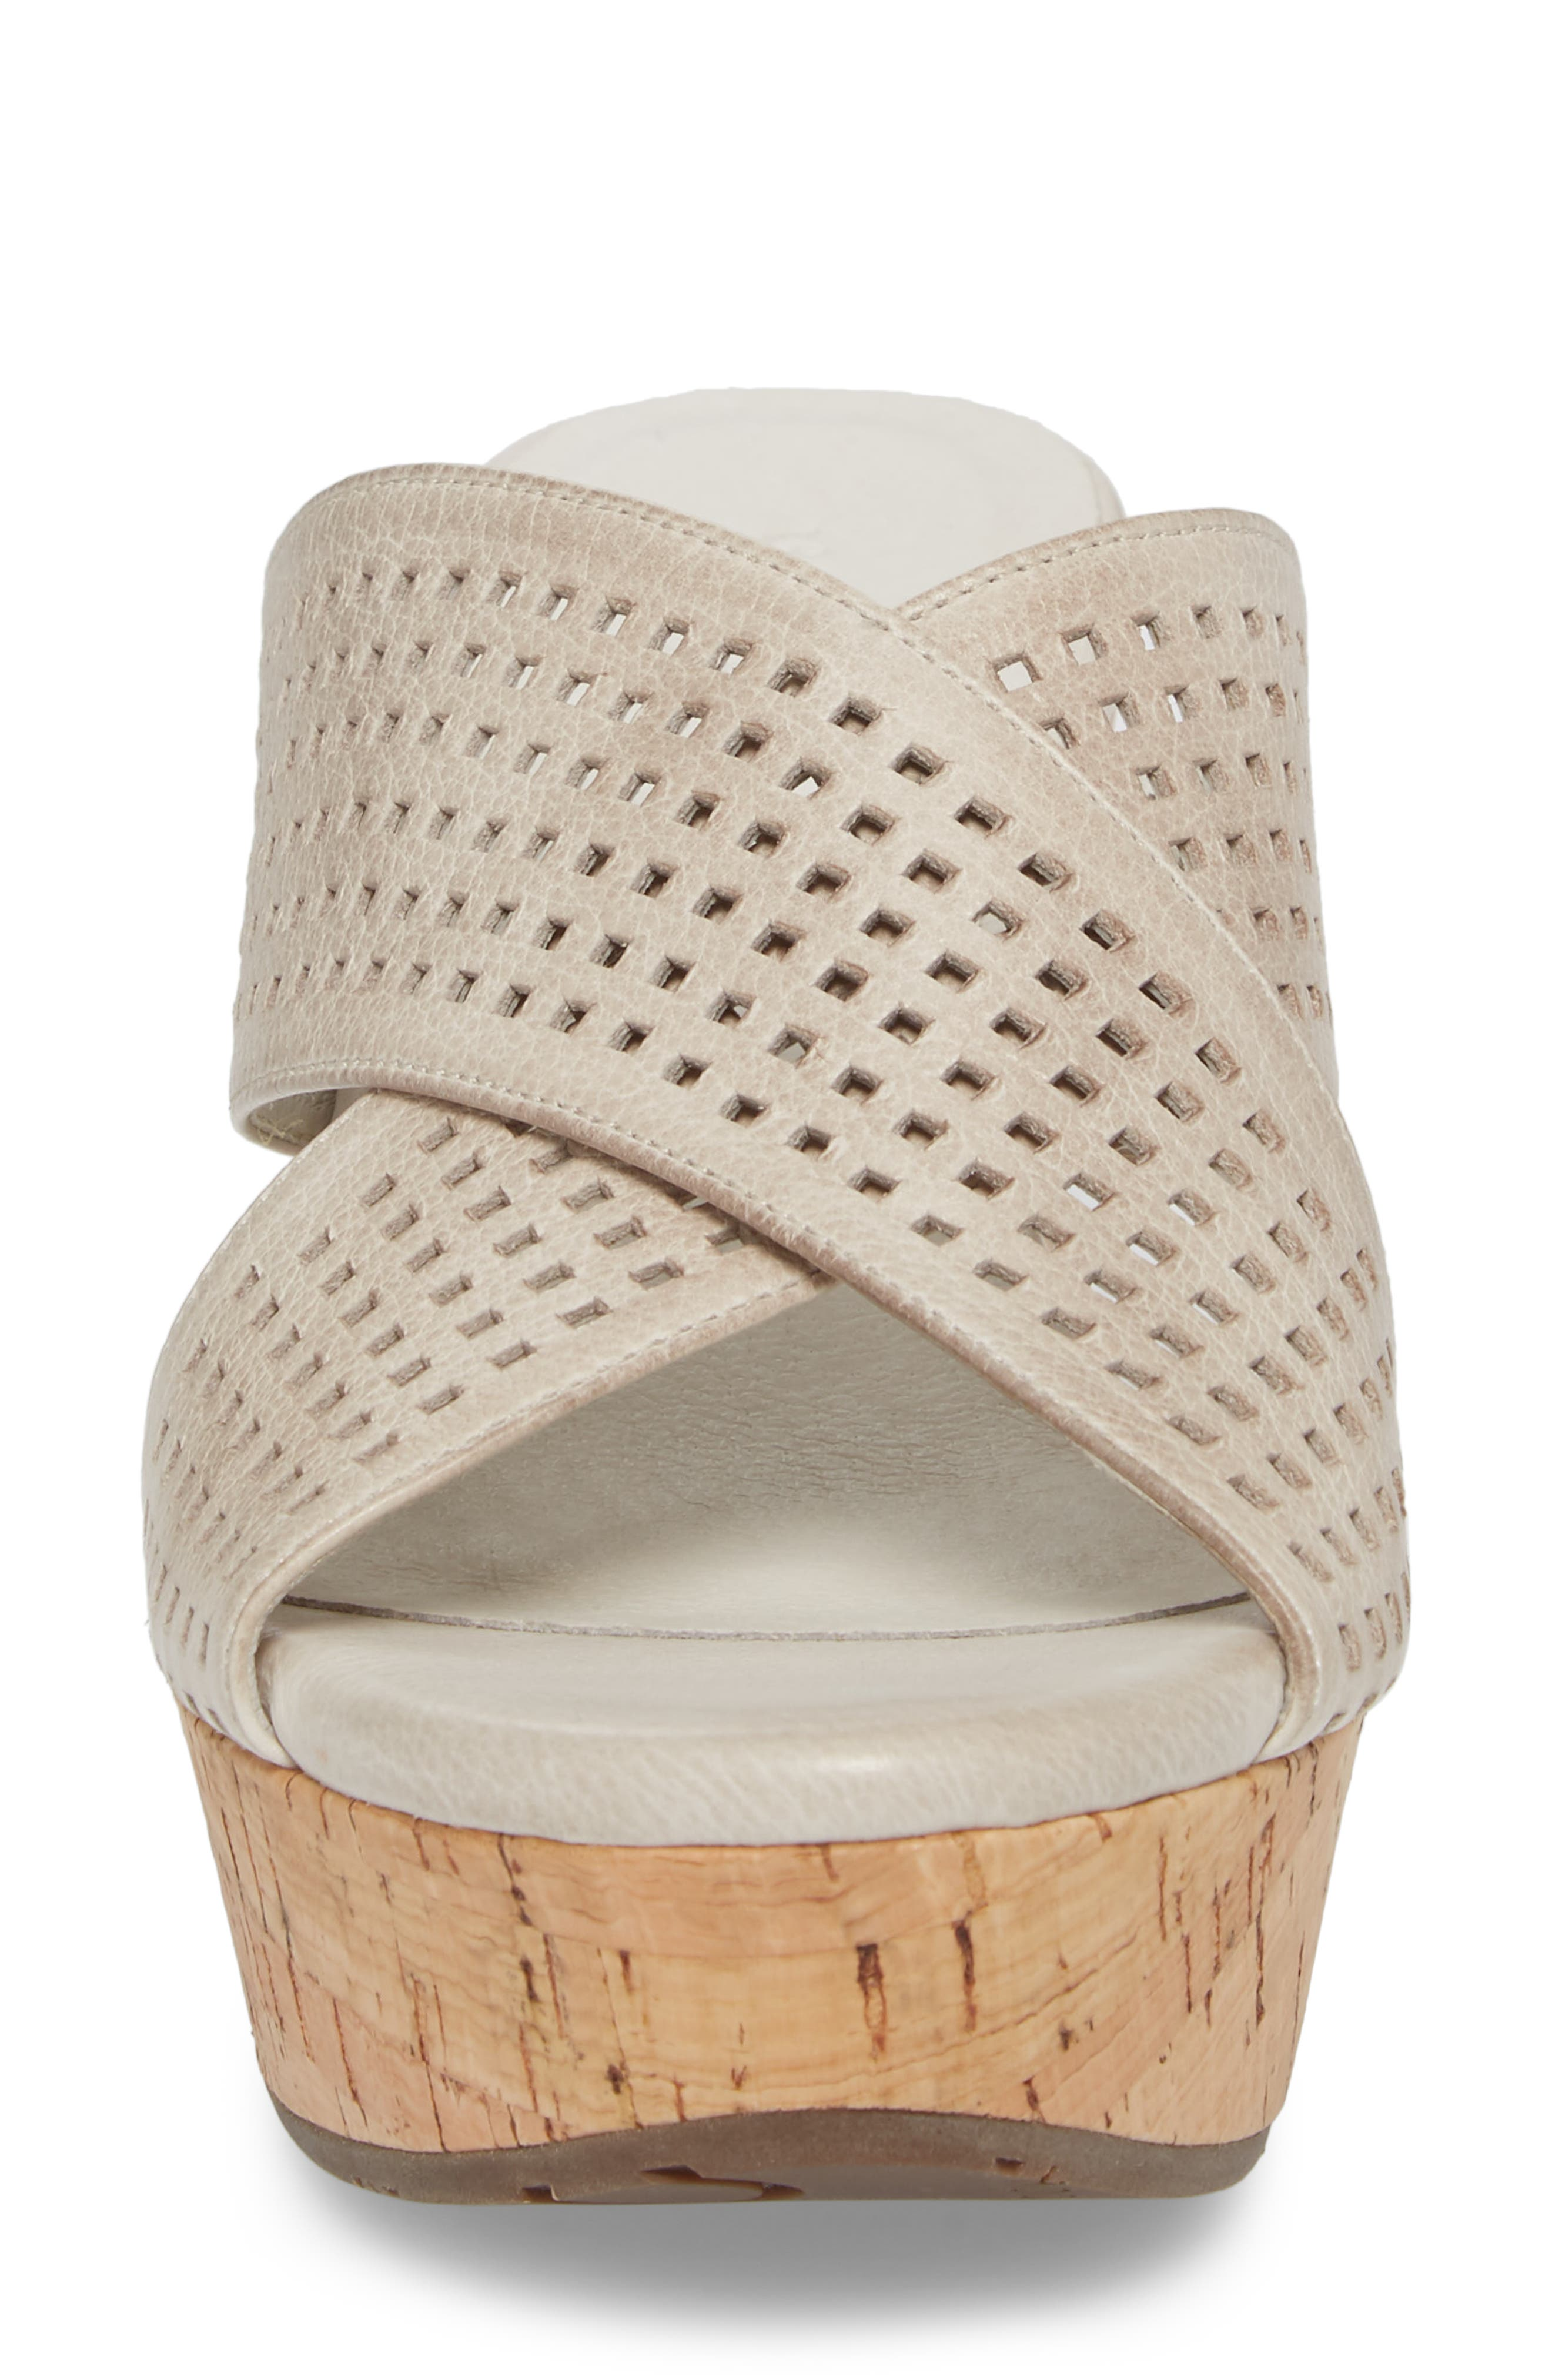 Wamblee Wedge Sandal,                             Alternate thumbnail 4, color,                             Ice Leather